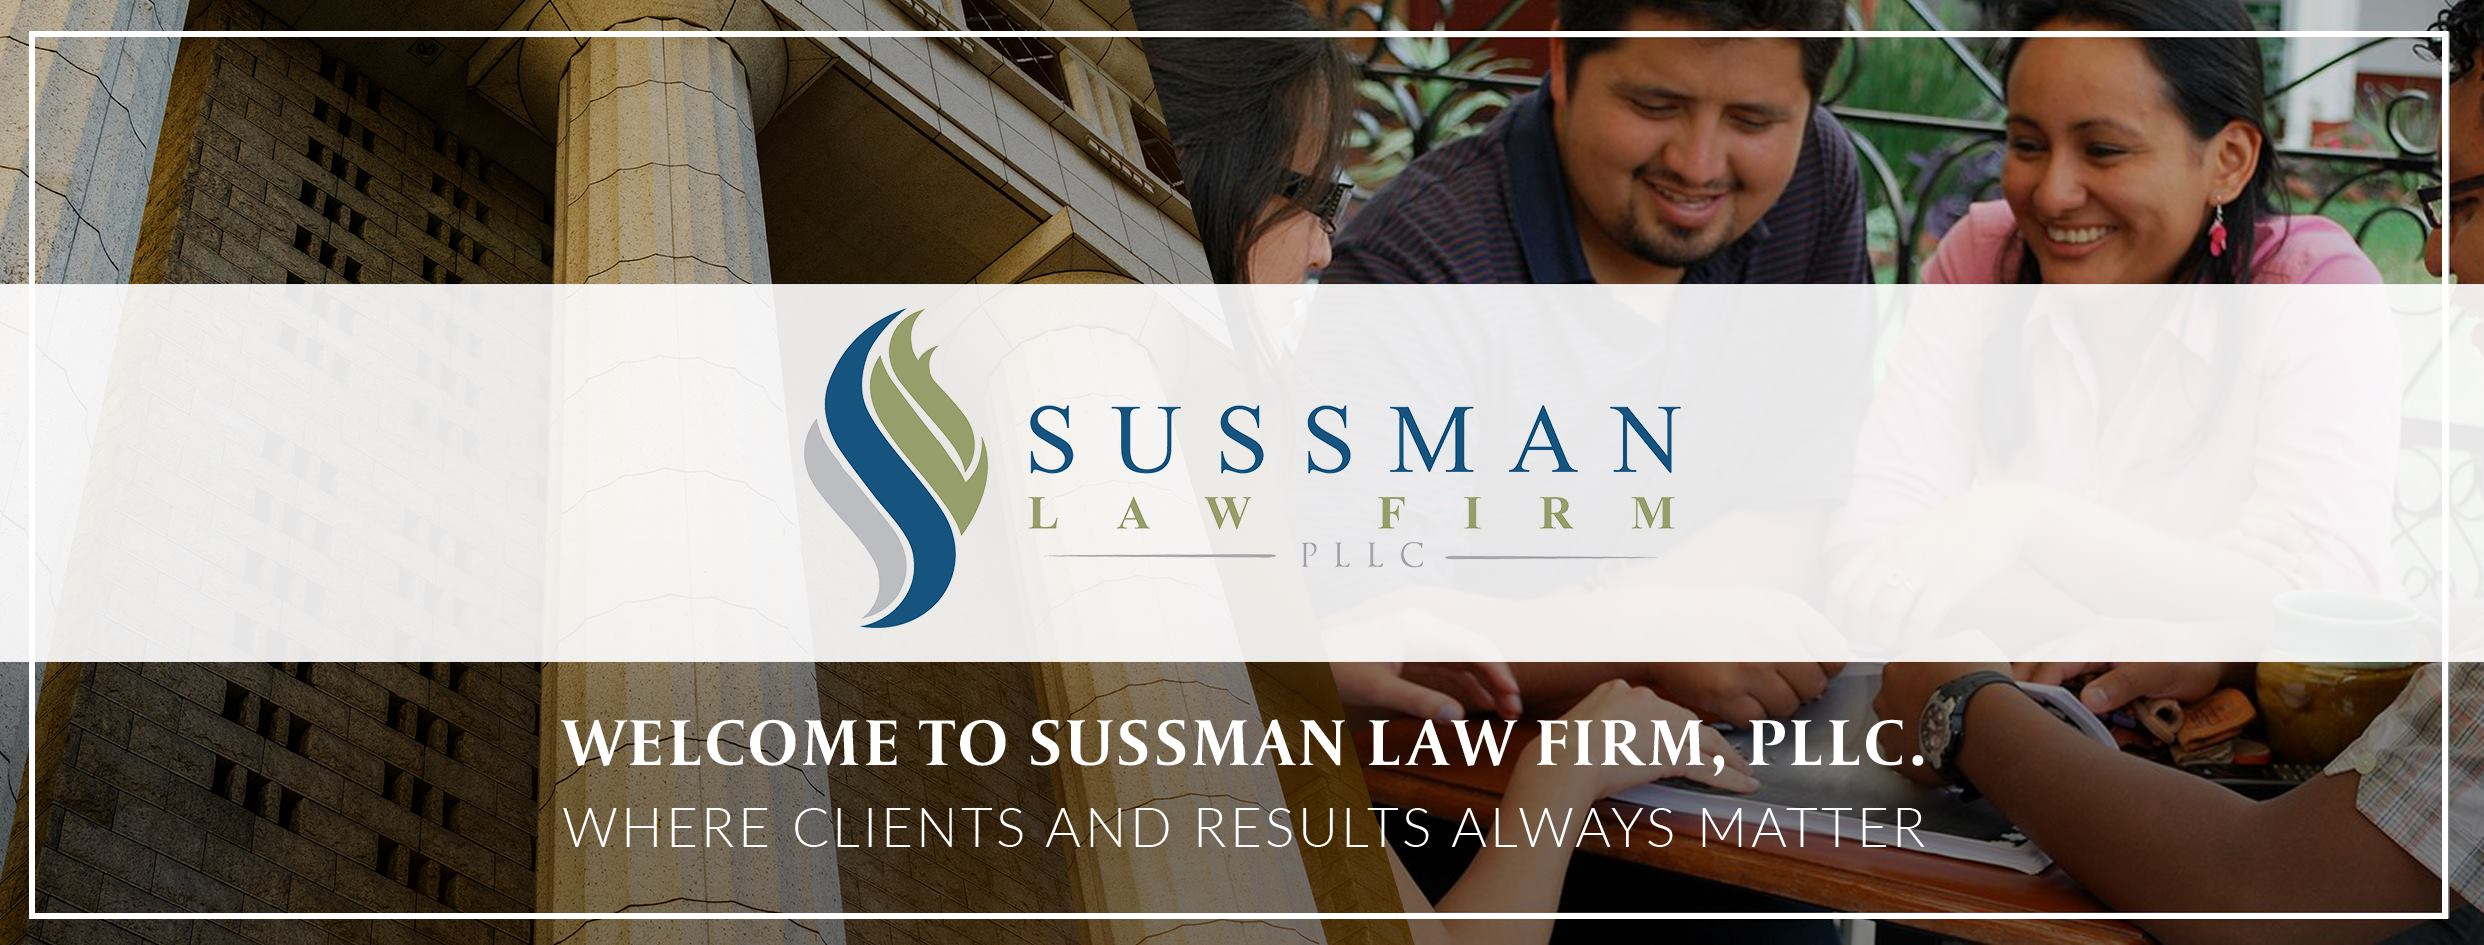 Sussman Law Firm, PLLC reviews | Divorce & Family Law at 9930 Monroe Rd #103 - Charlotte NC